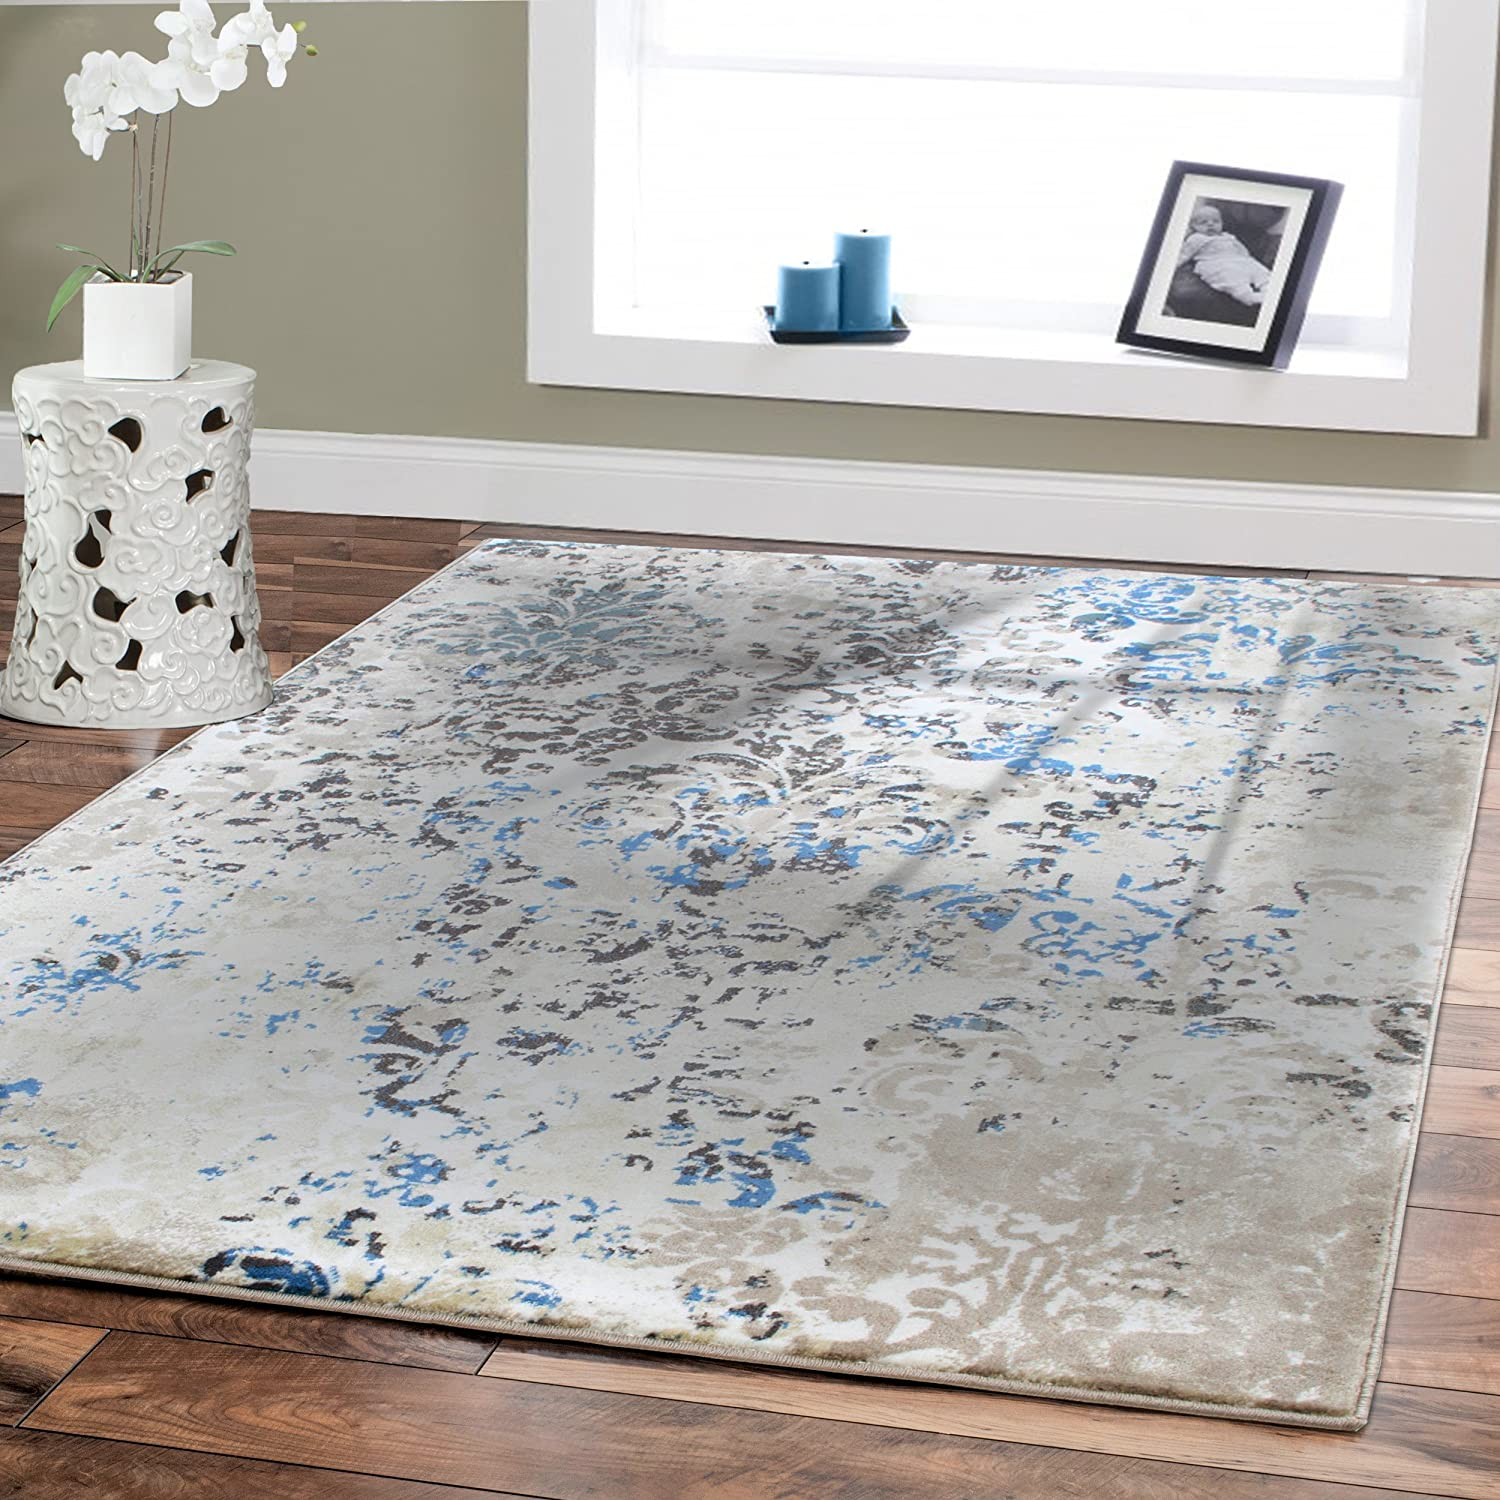 amazoncom premium soft contemporary rug for living room luxury x creamblue brown beige area rugs modern rugs x bedroom office area rugsclearance . amazoncom premium soft contemporary rug for living room luxury